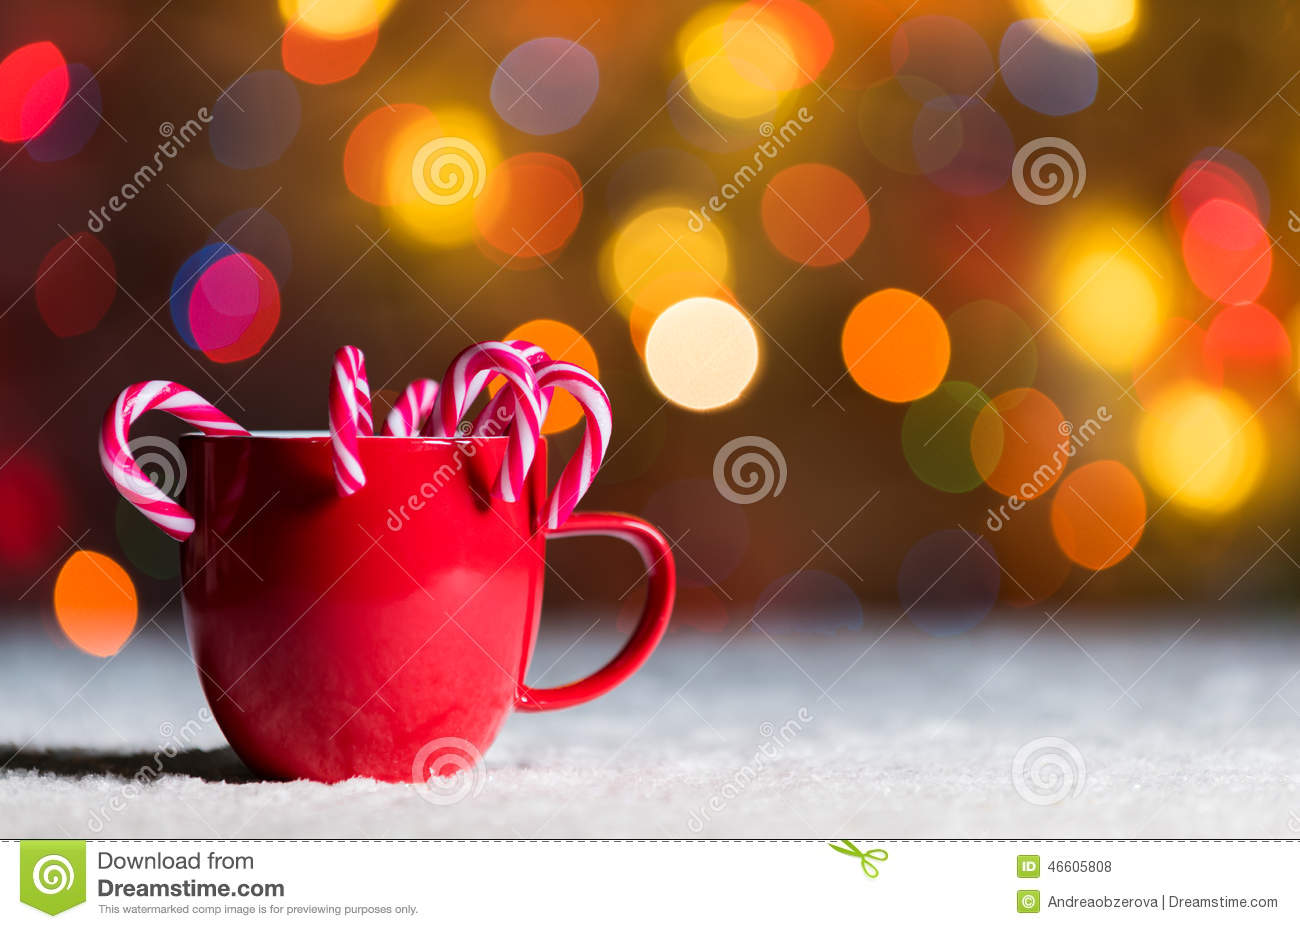 Red mug with candy canes in snow with defocussed fairy lights, bokeh in the background, Festive Christmas background